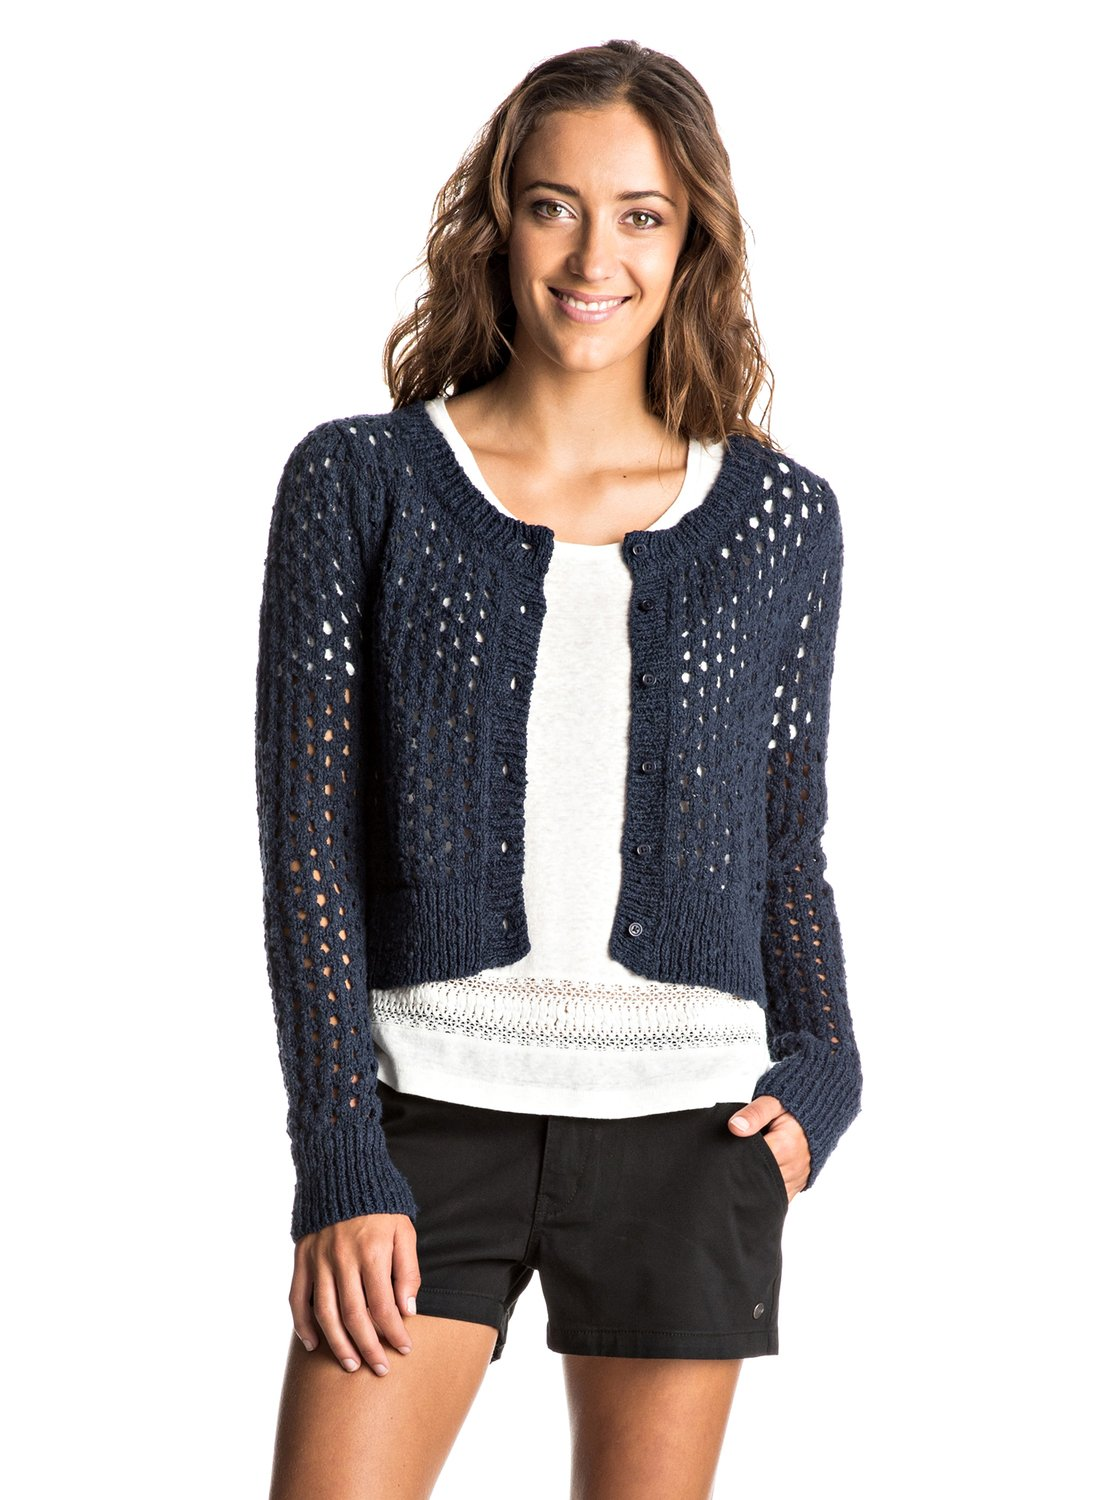 4410c485d7 0 My Adventure - Cropped Knitted Cardigan ERJSW03191 Roxy